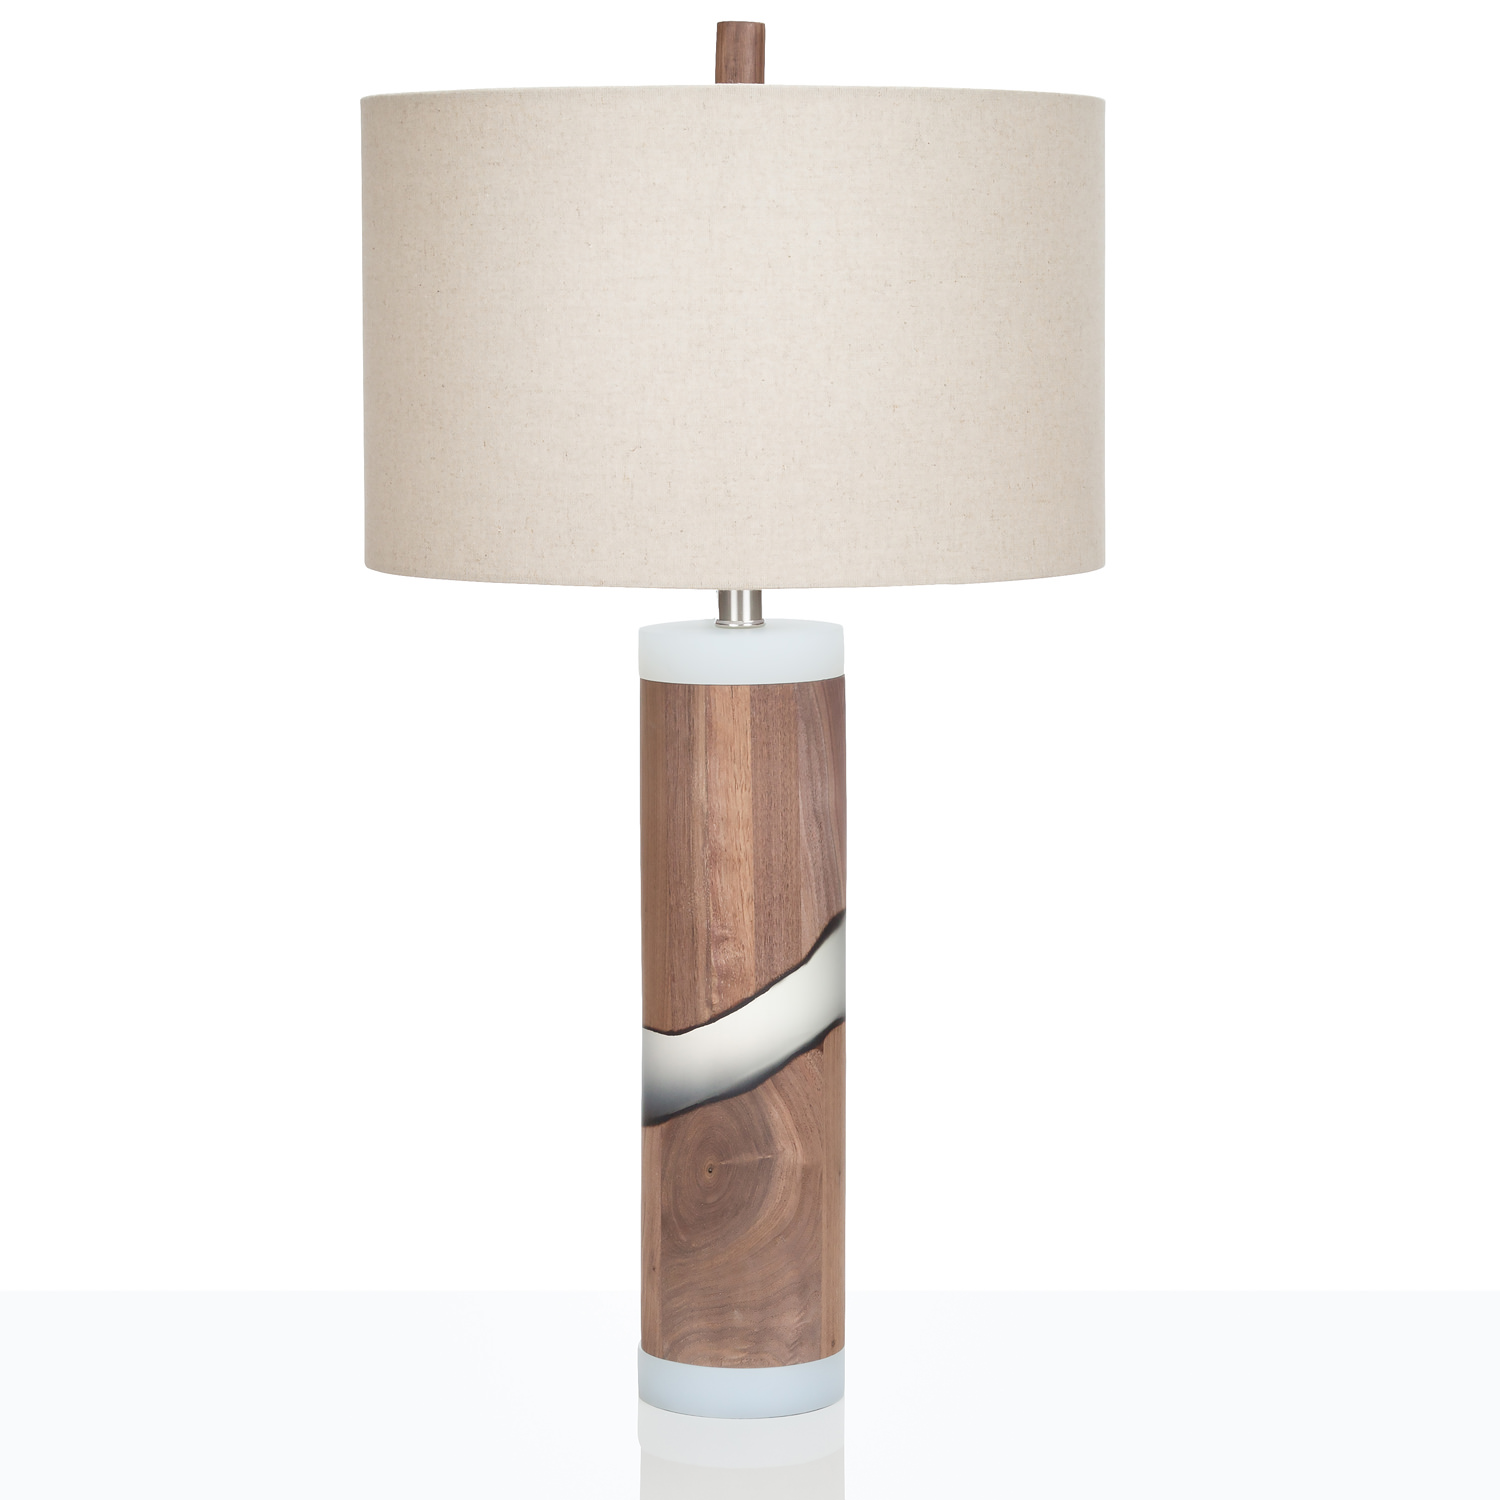 Couture Lamps Lamps 35.jpg